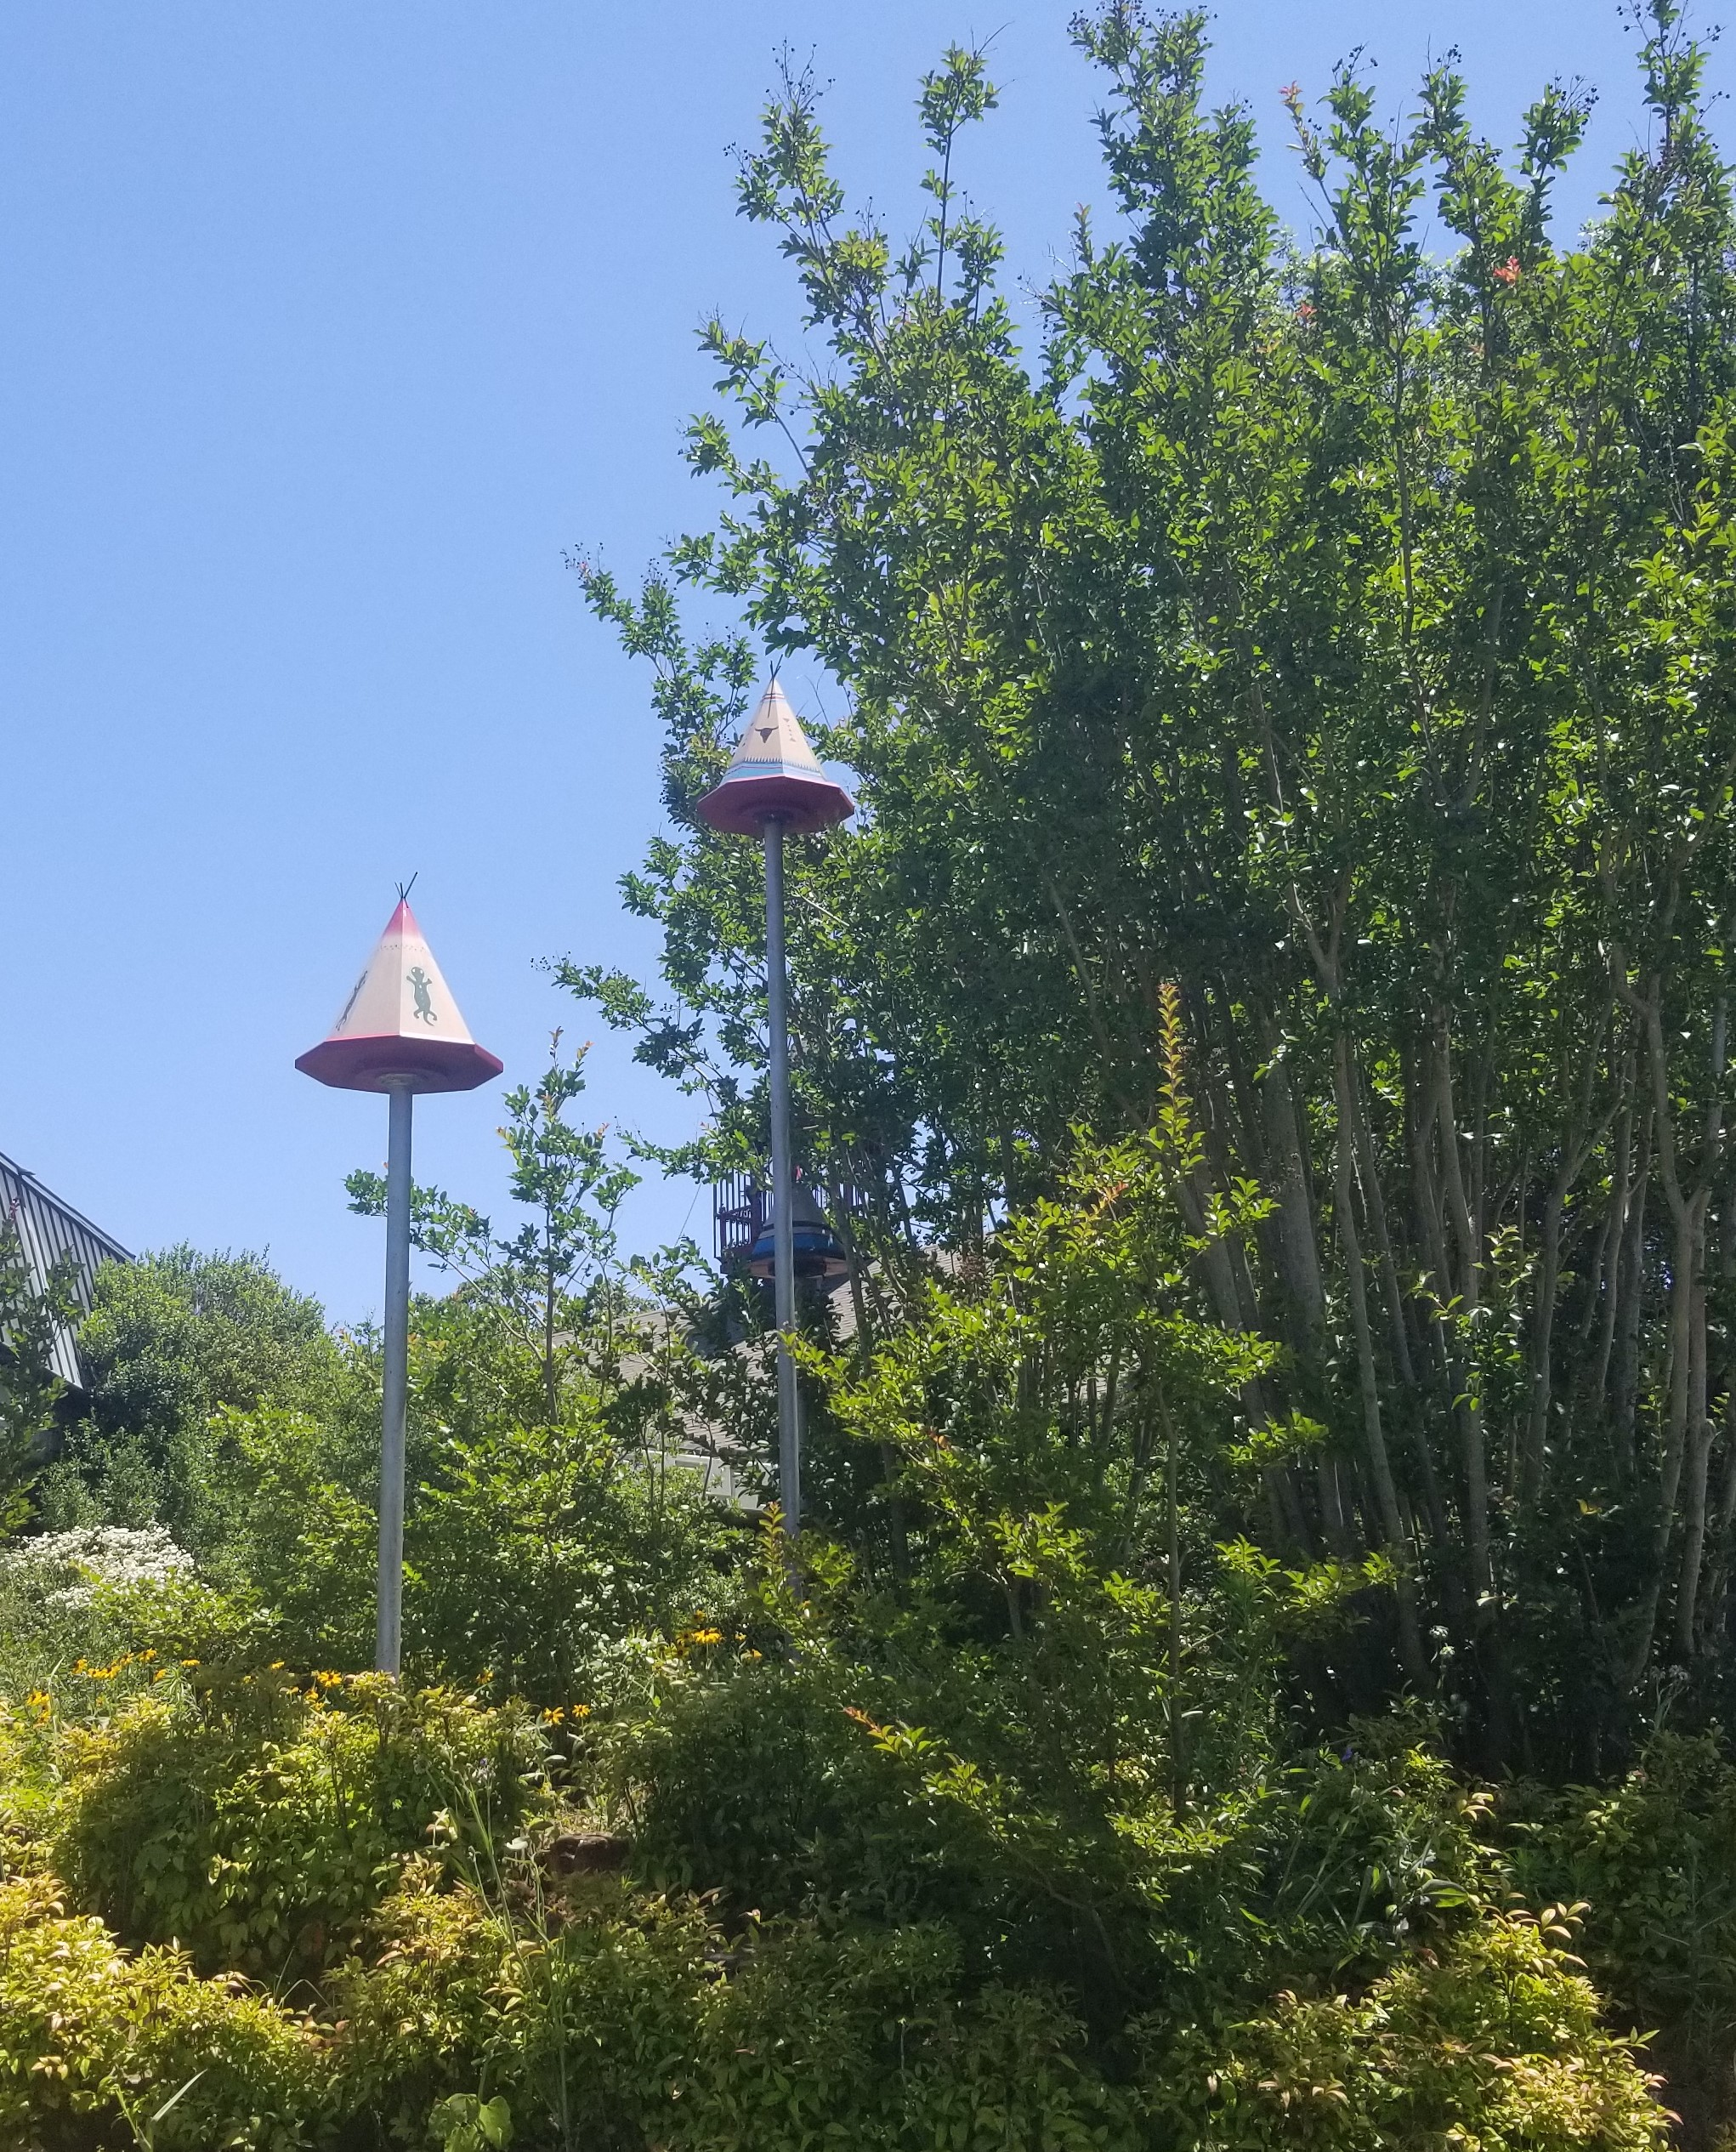 Jeri was fascinated with these amazing bird houses all around the property